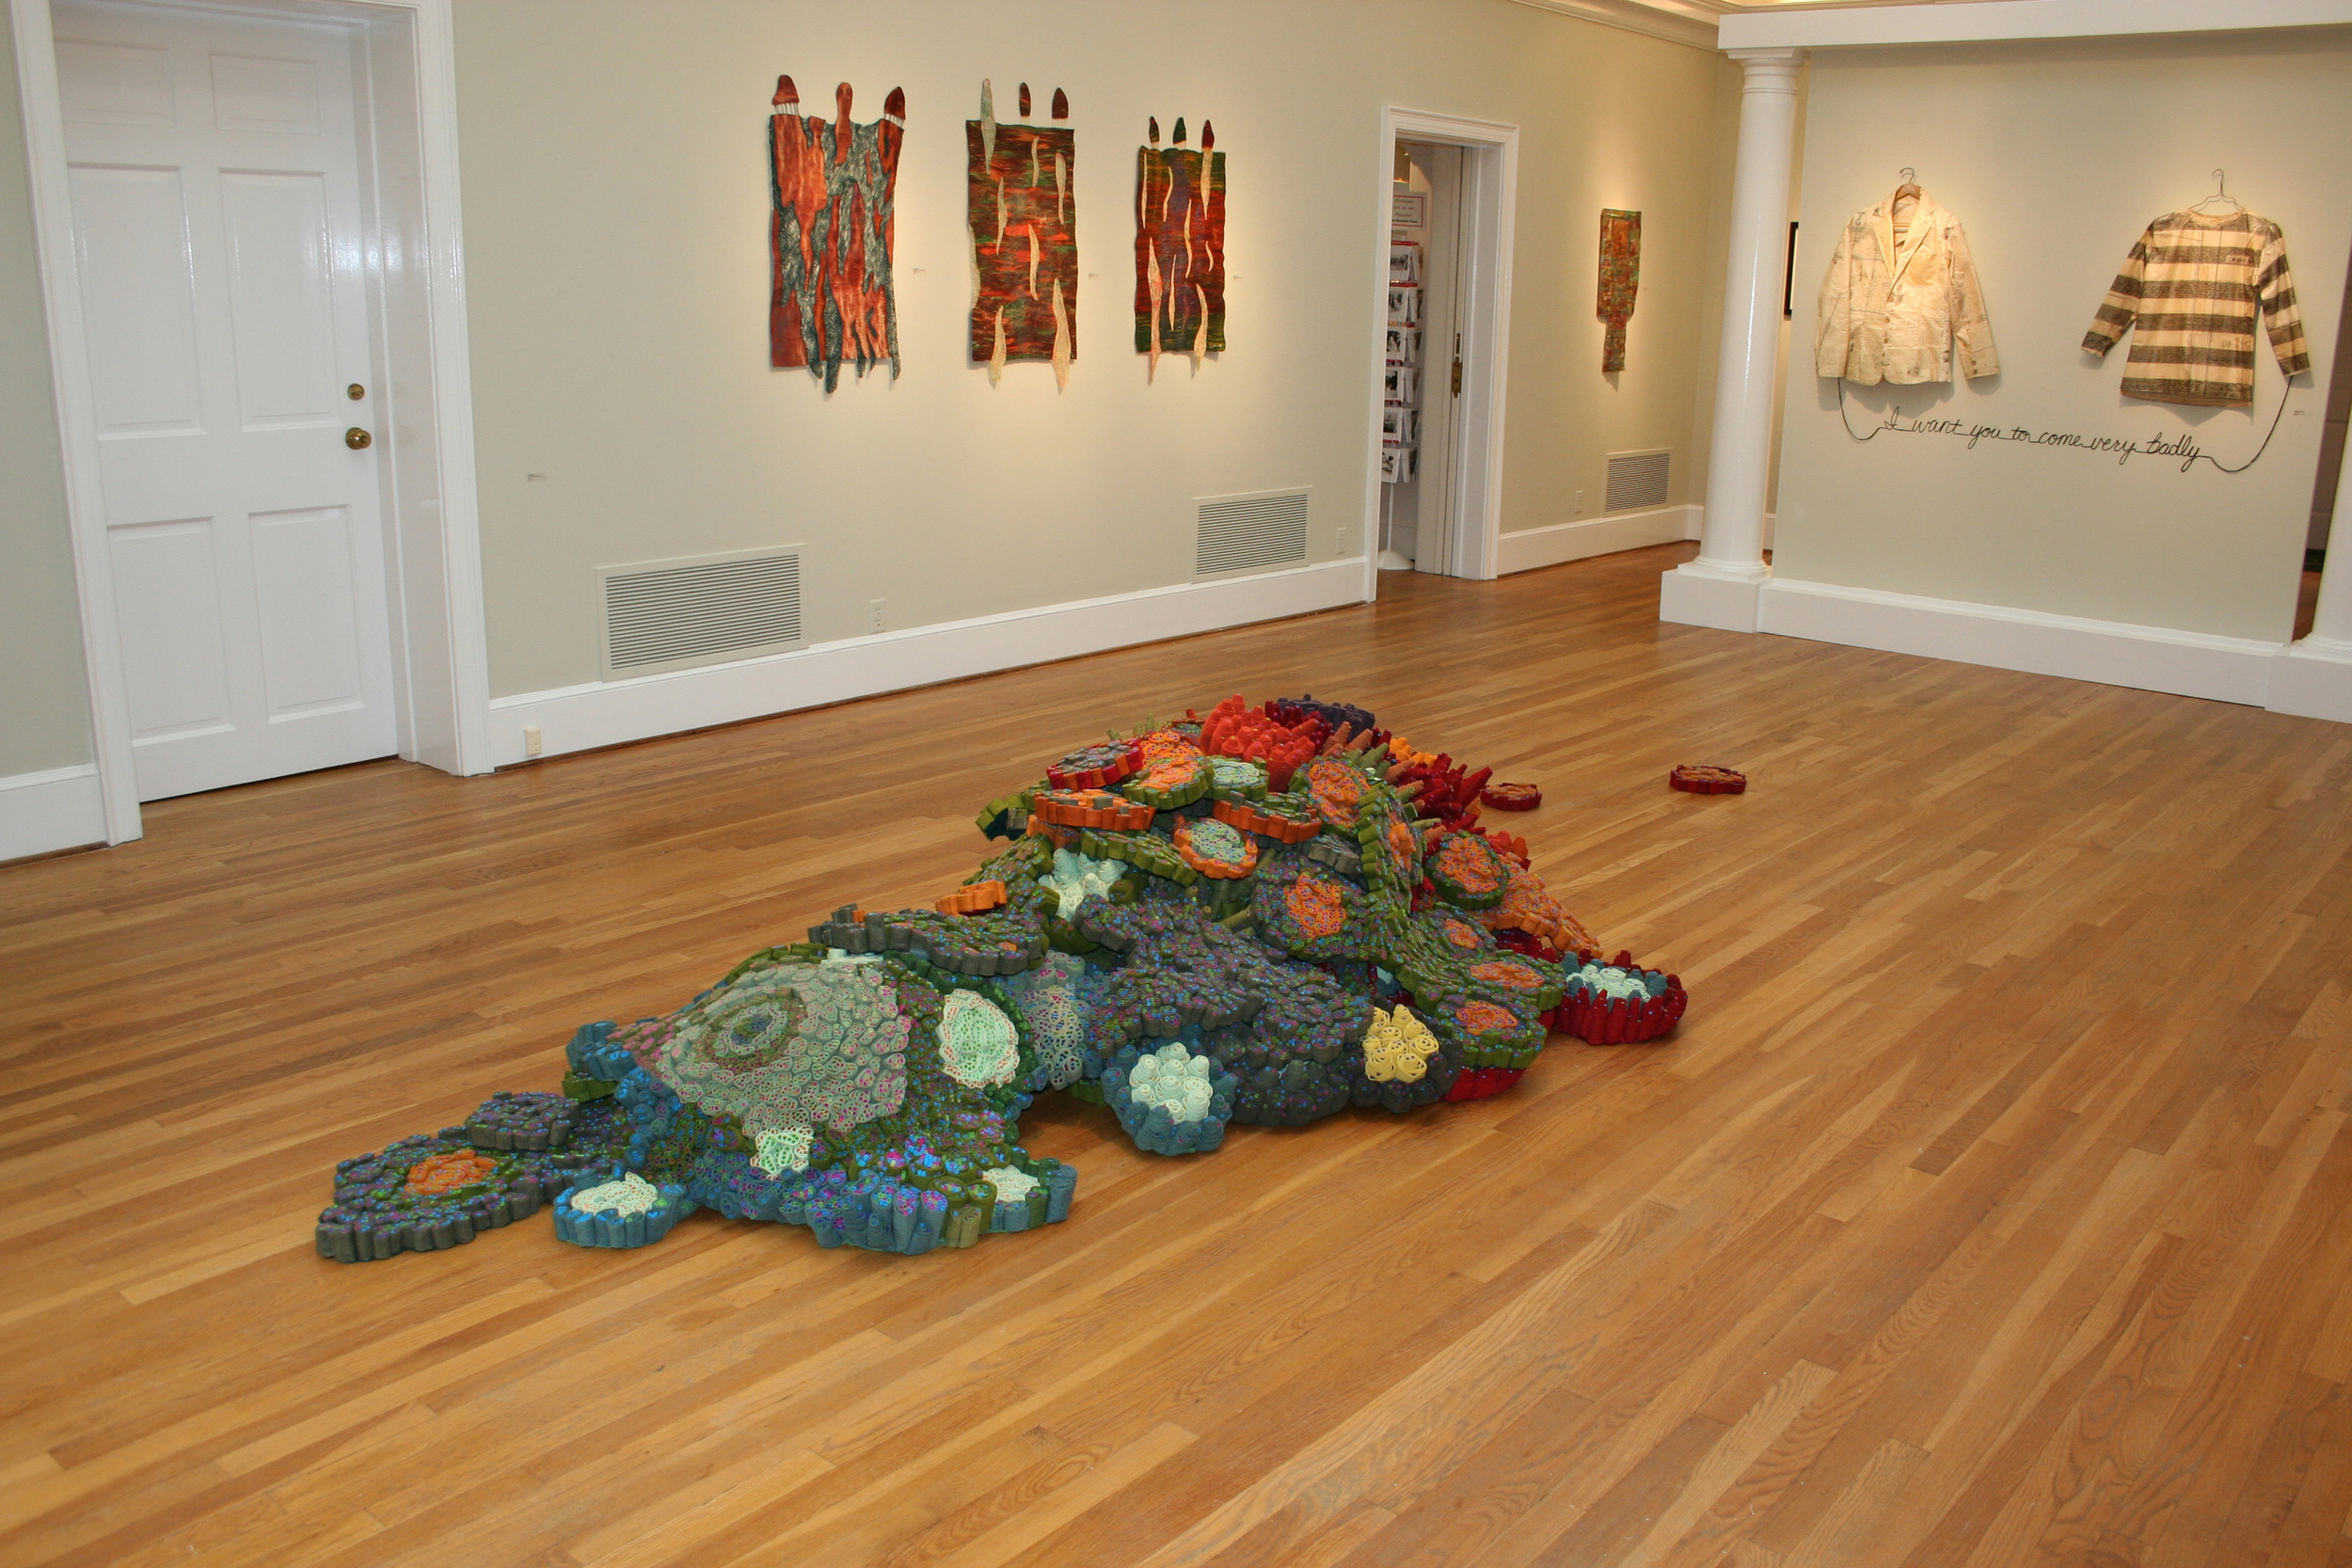 (in)CONSEQUENTIAL by Leisa Rich will soon get hidden in a variety of locations to become one with the earth, or to be discovered and adopted by its finders....here is the view at Swan Coach House gallery